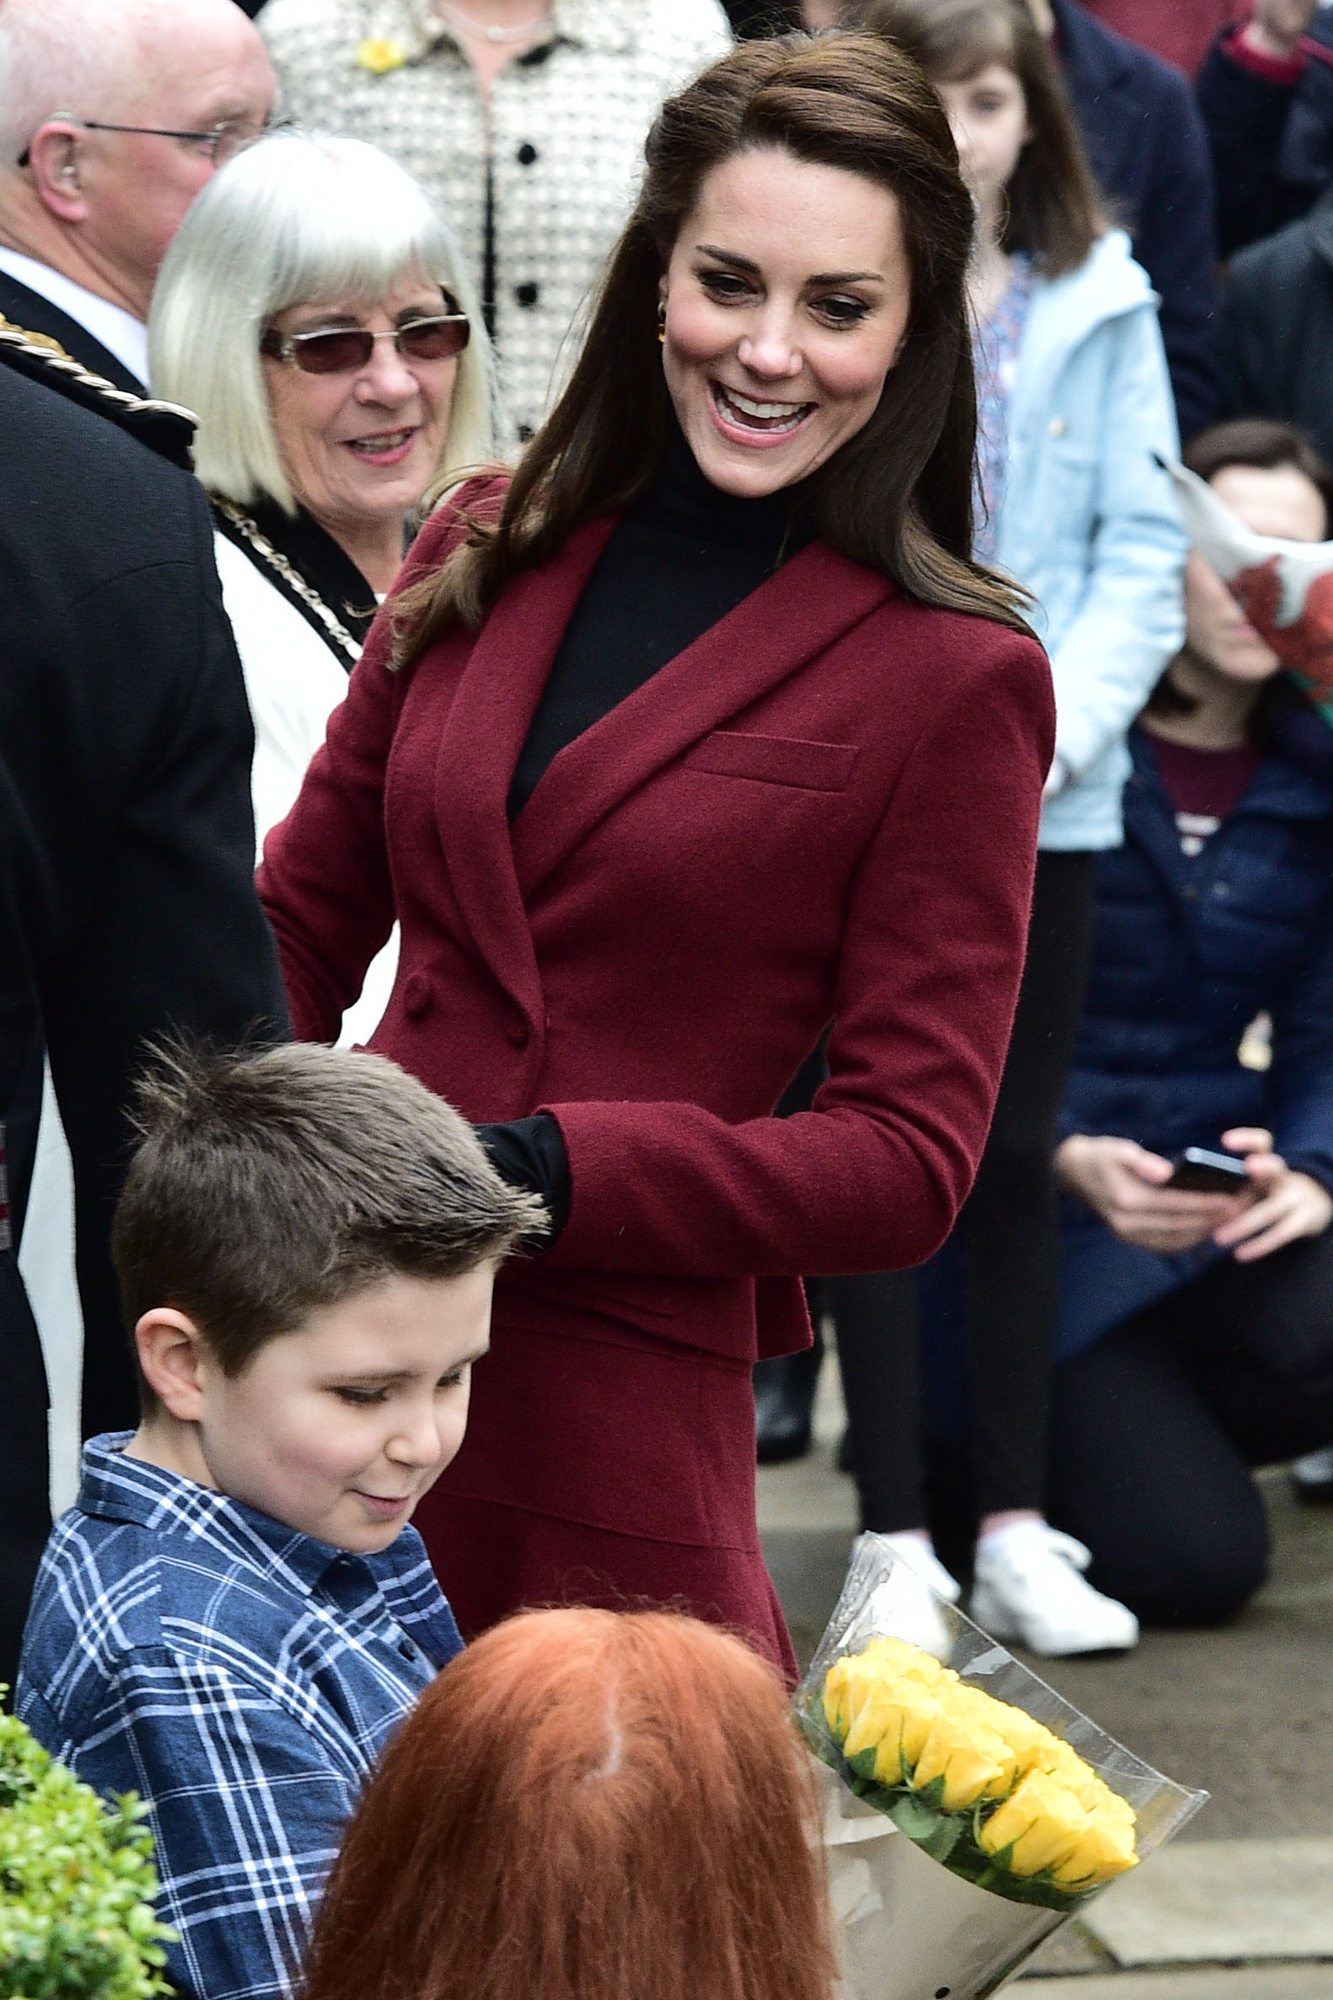 The Duchess of Cambridge arrives for a visit to MIST, a child and adolescent mental health project in Torfaen in Wales.